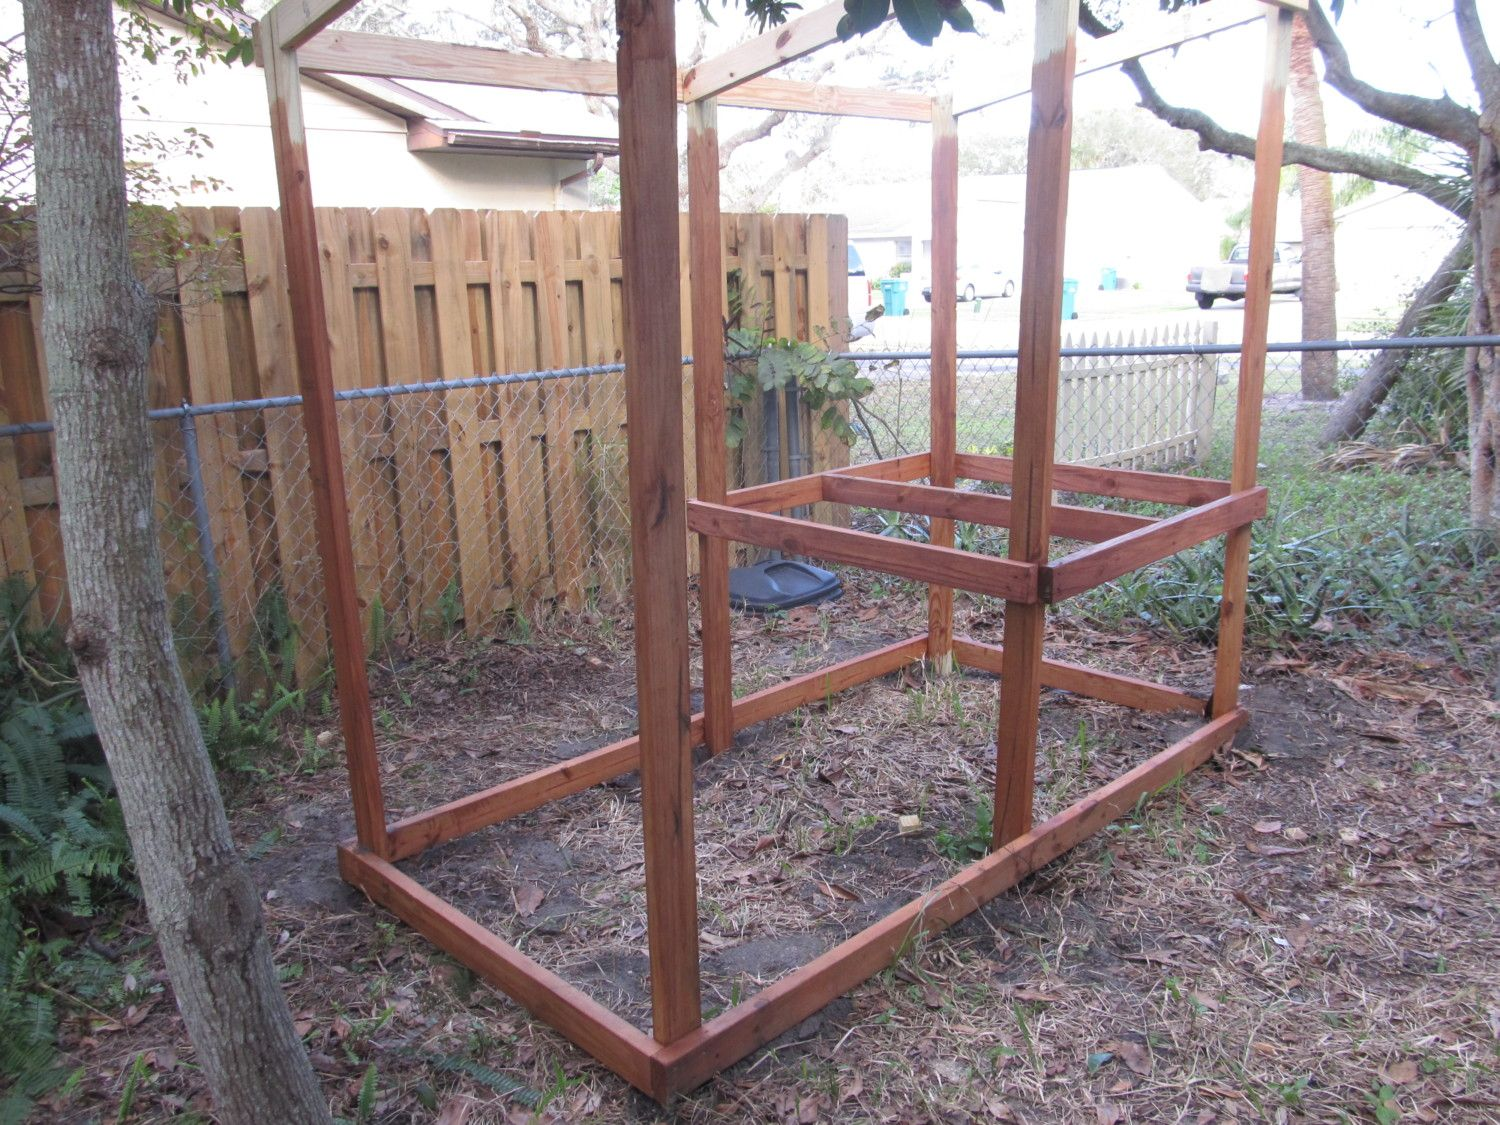 Corner view of the coop frame.